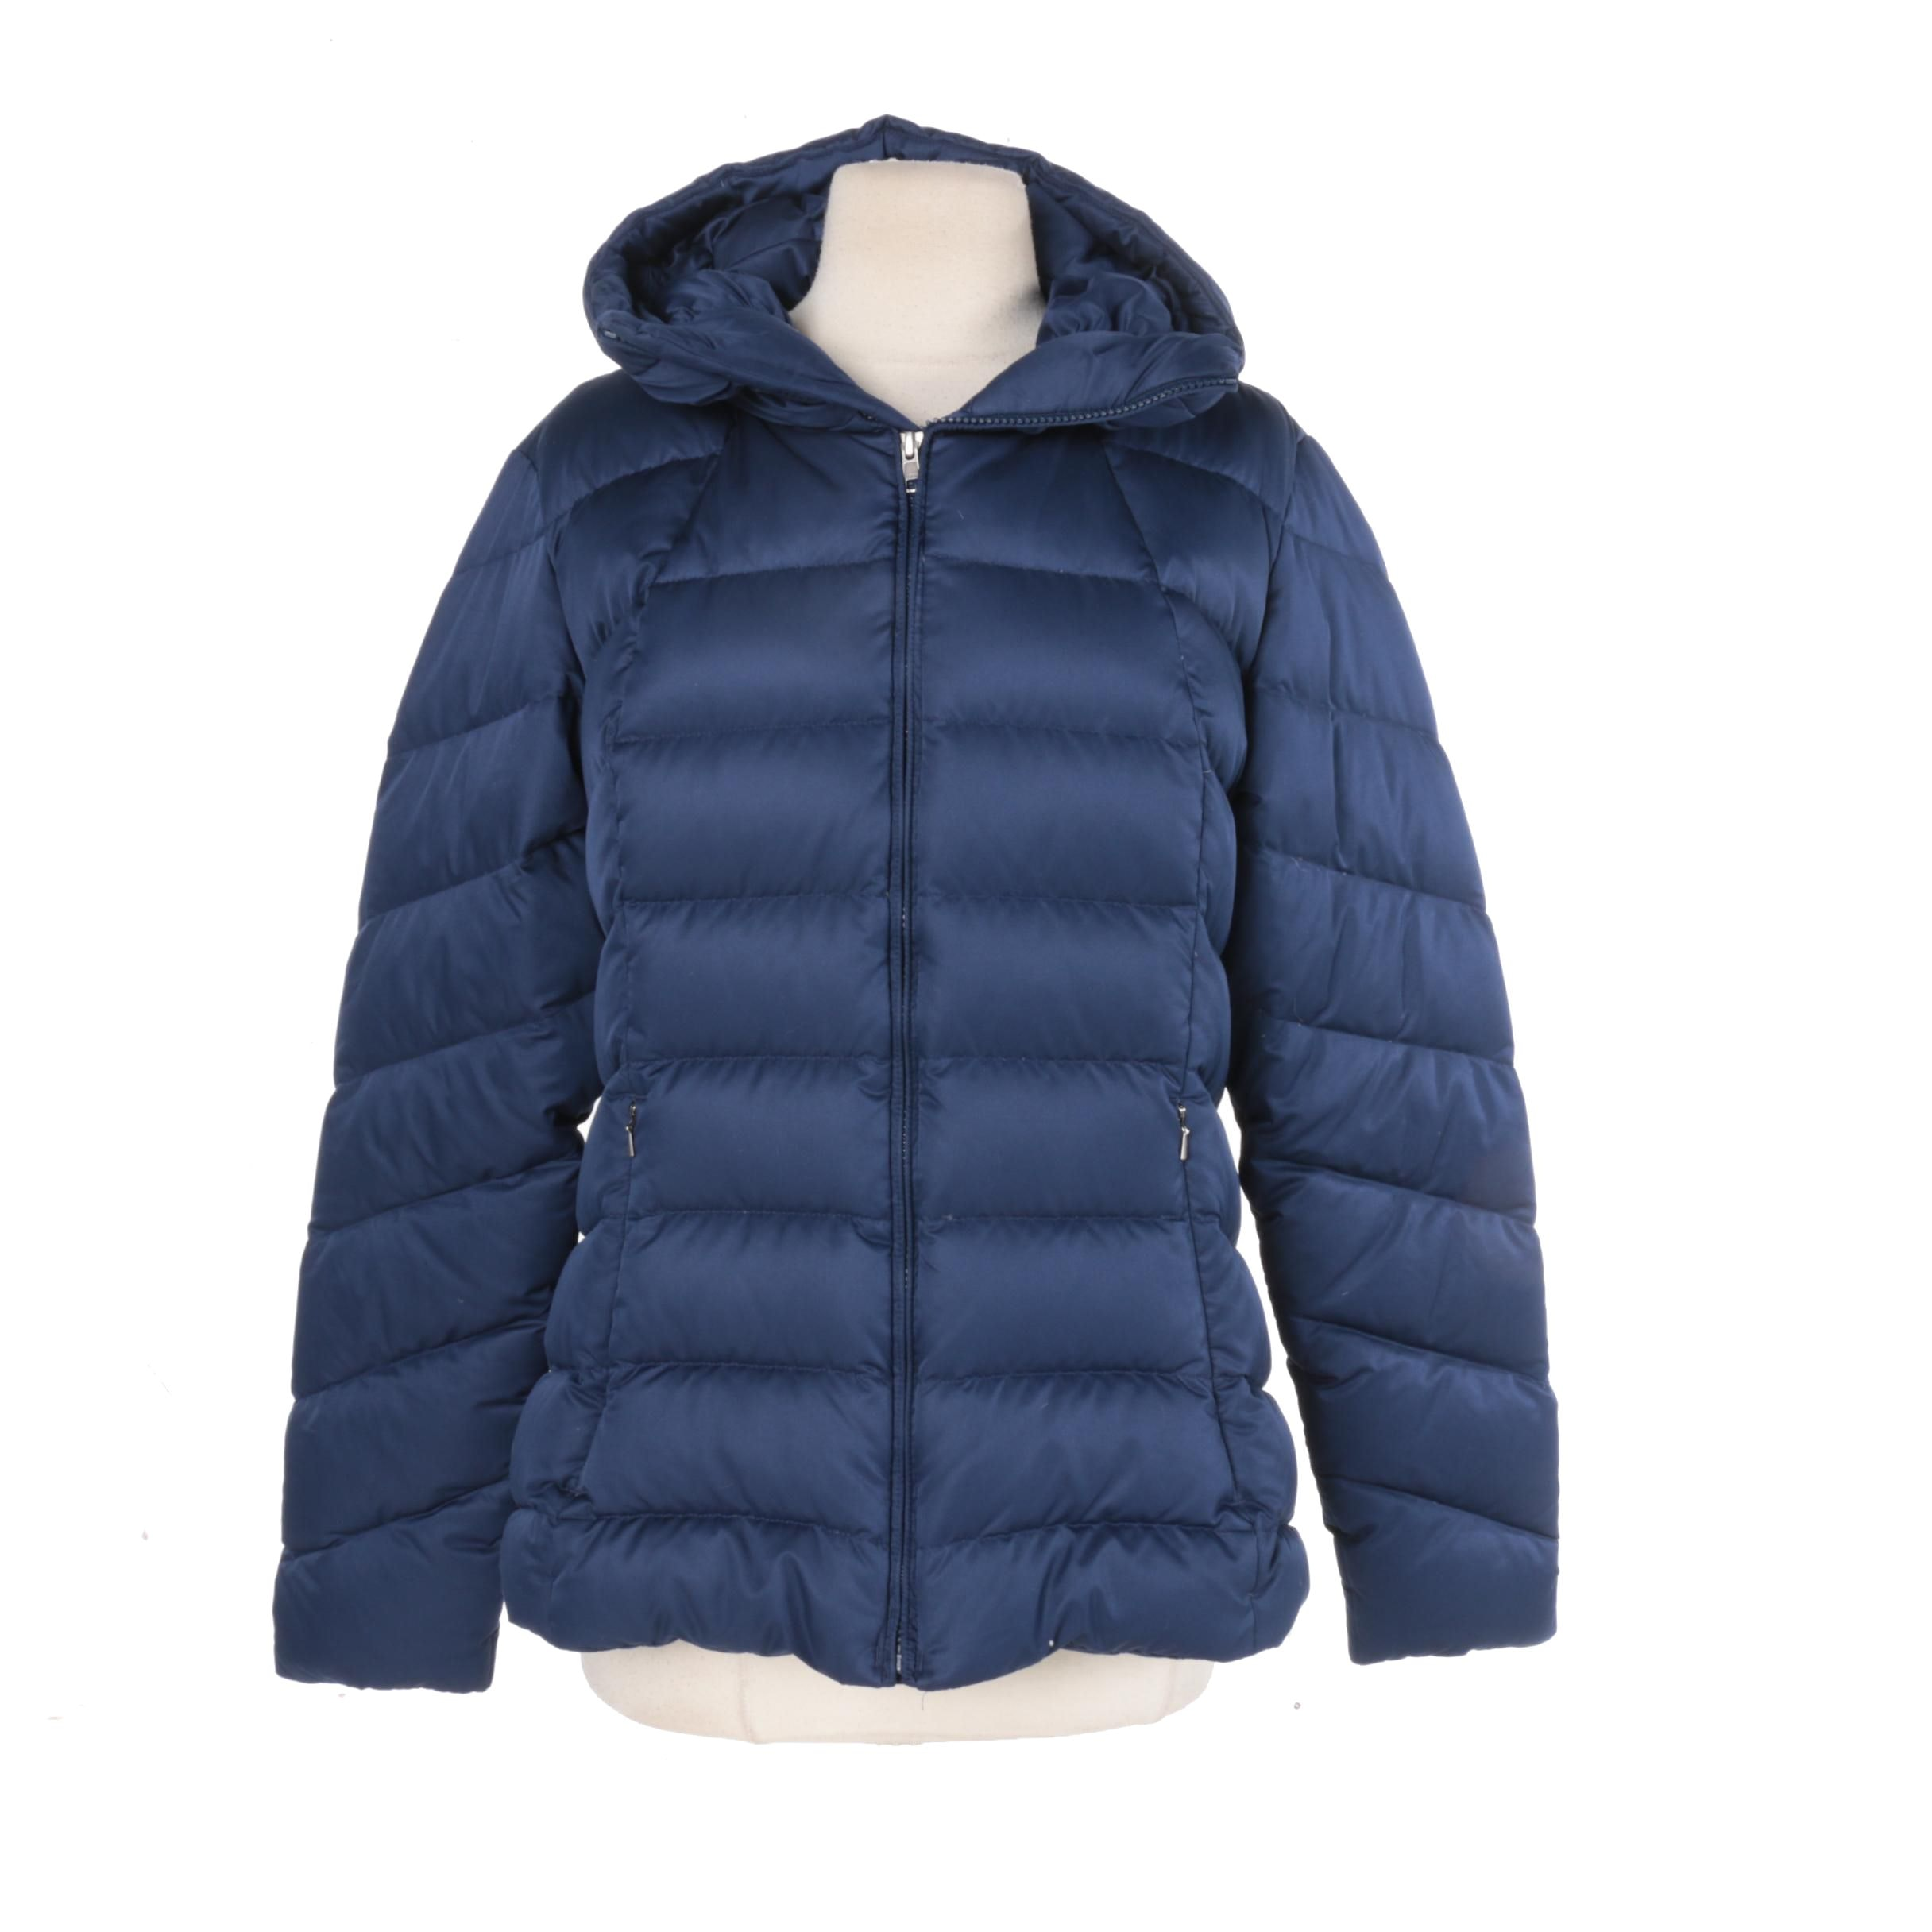 Women's Patagonia Navy Blue Puffer Coat